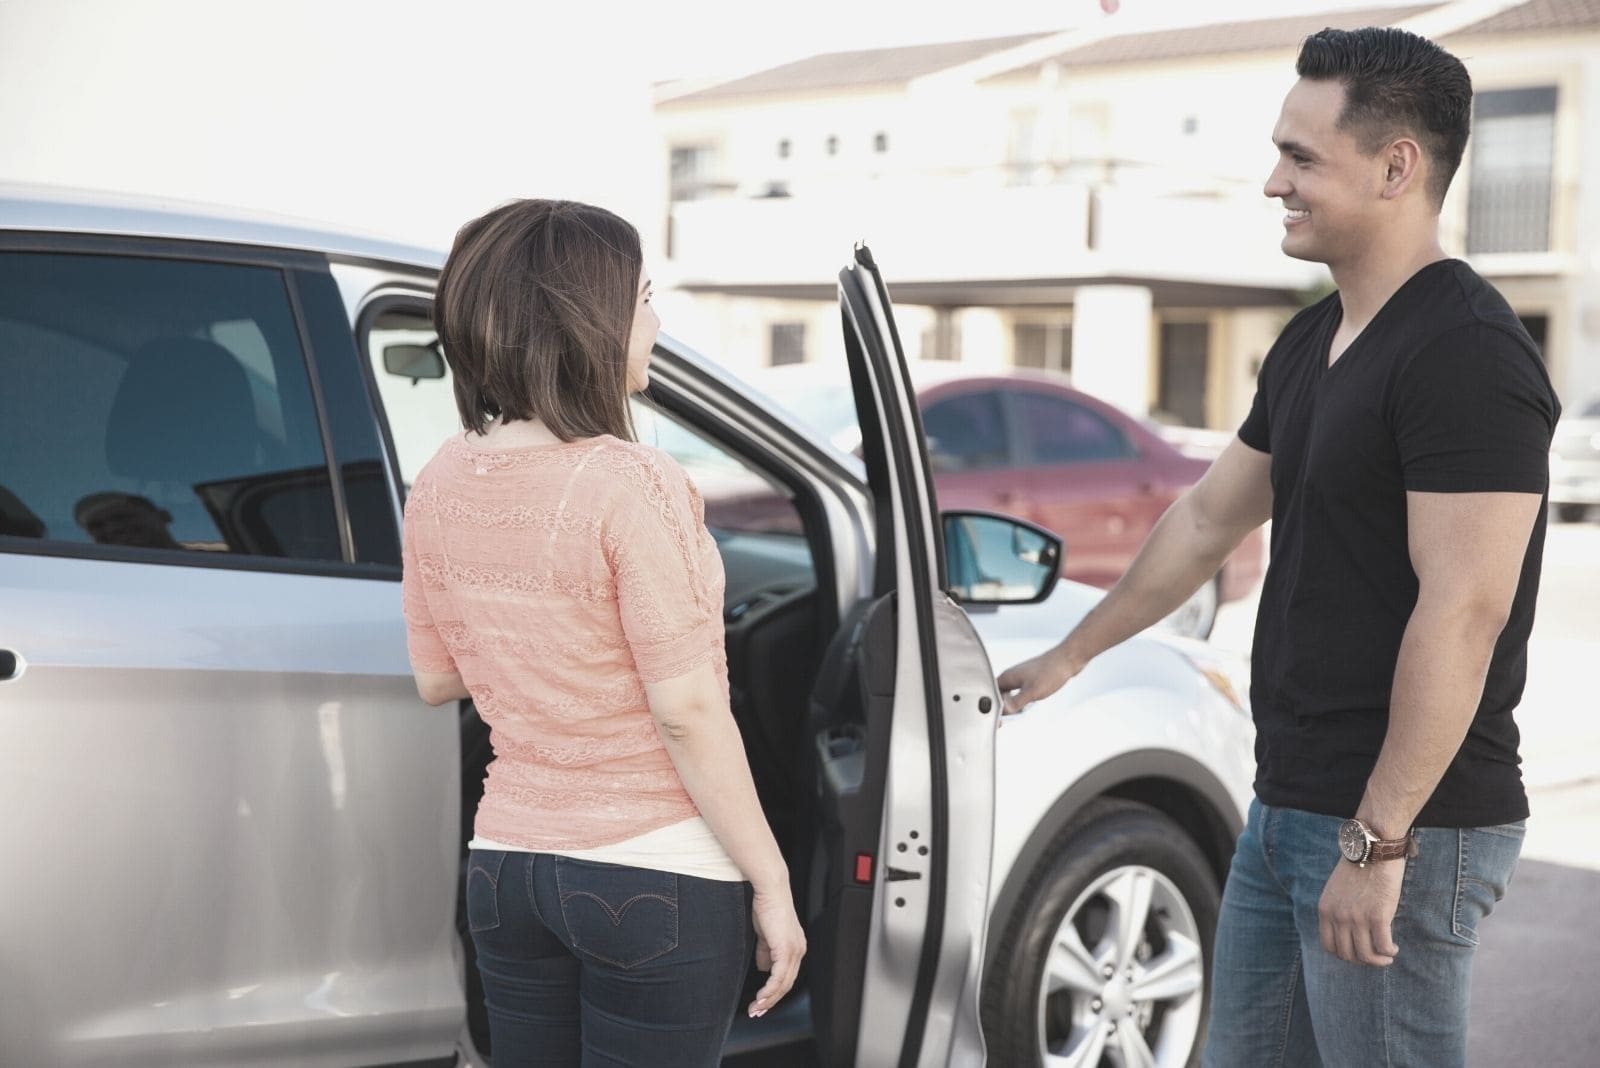 young man opening door of the car for a woman